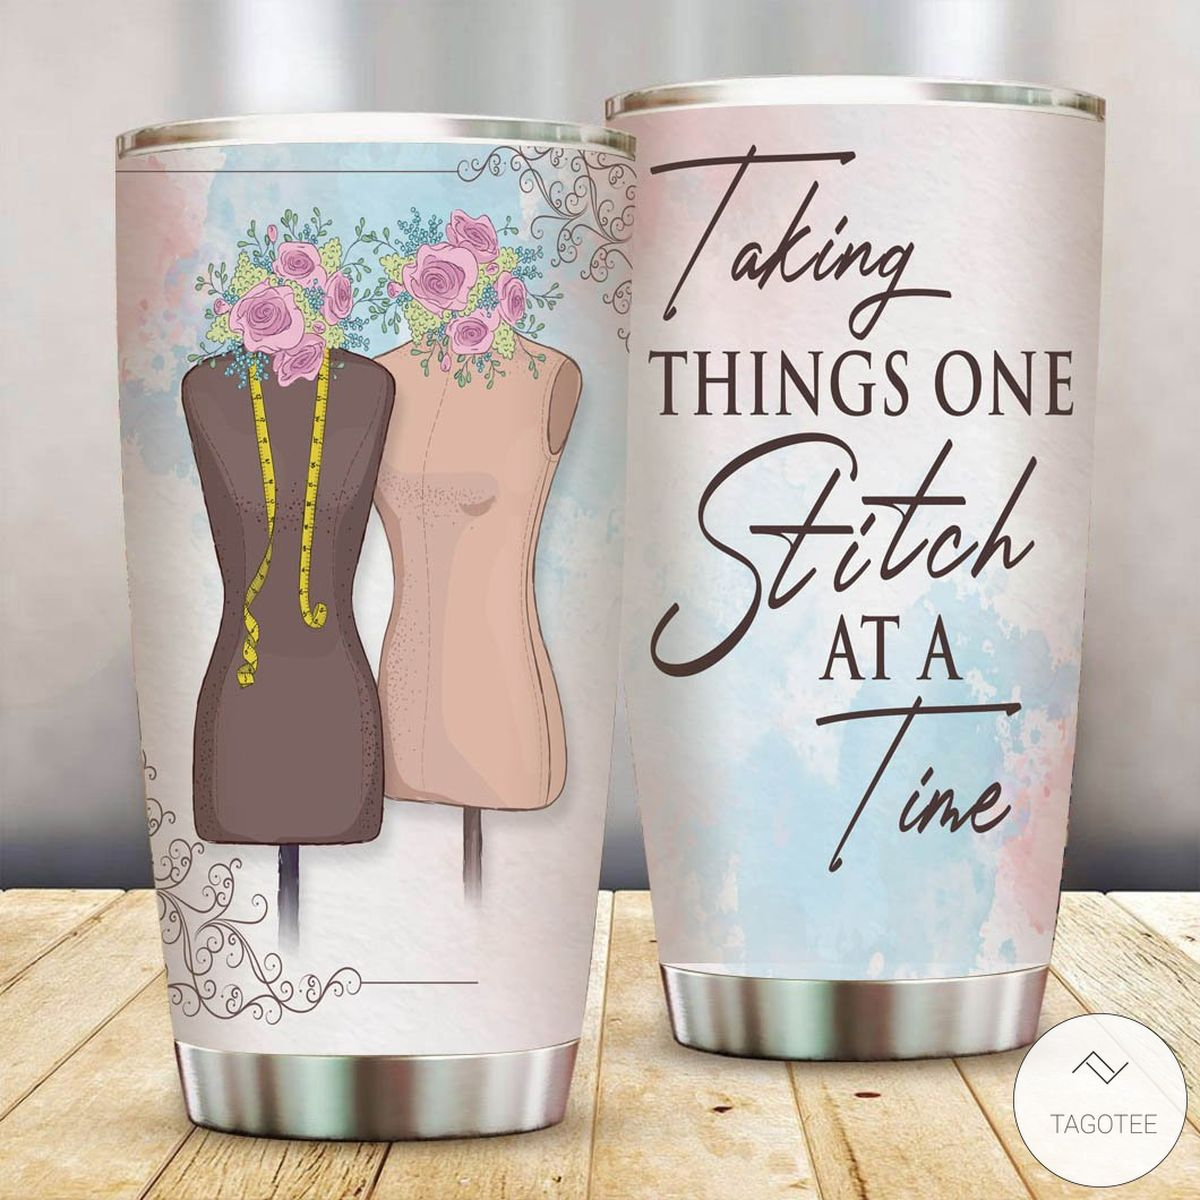 Taking Things One Stitch At A Time Tumbler